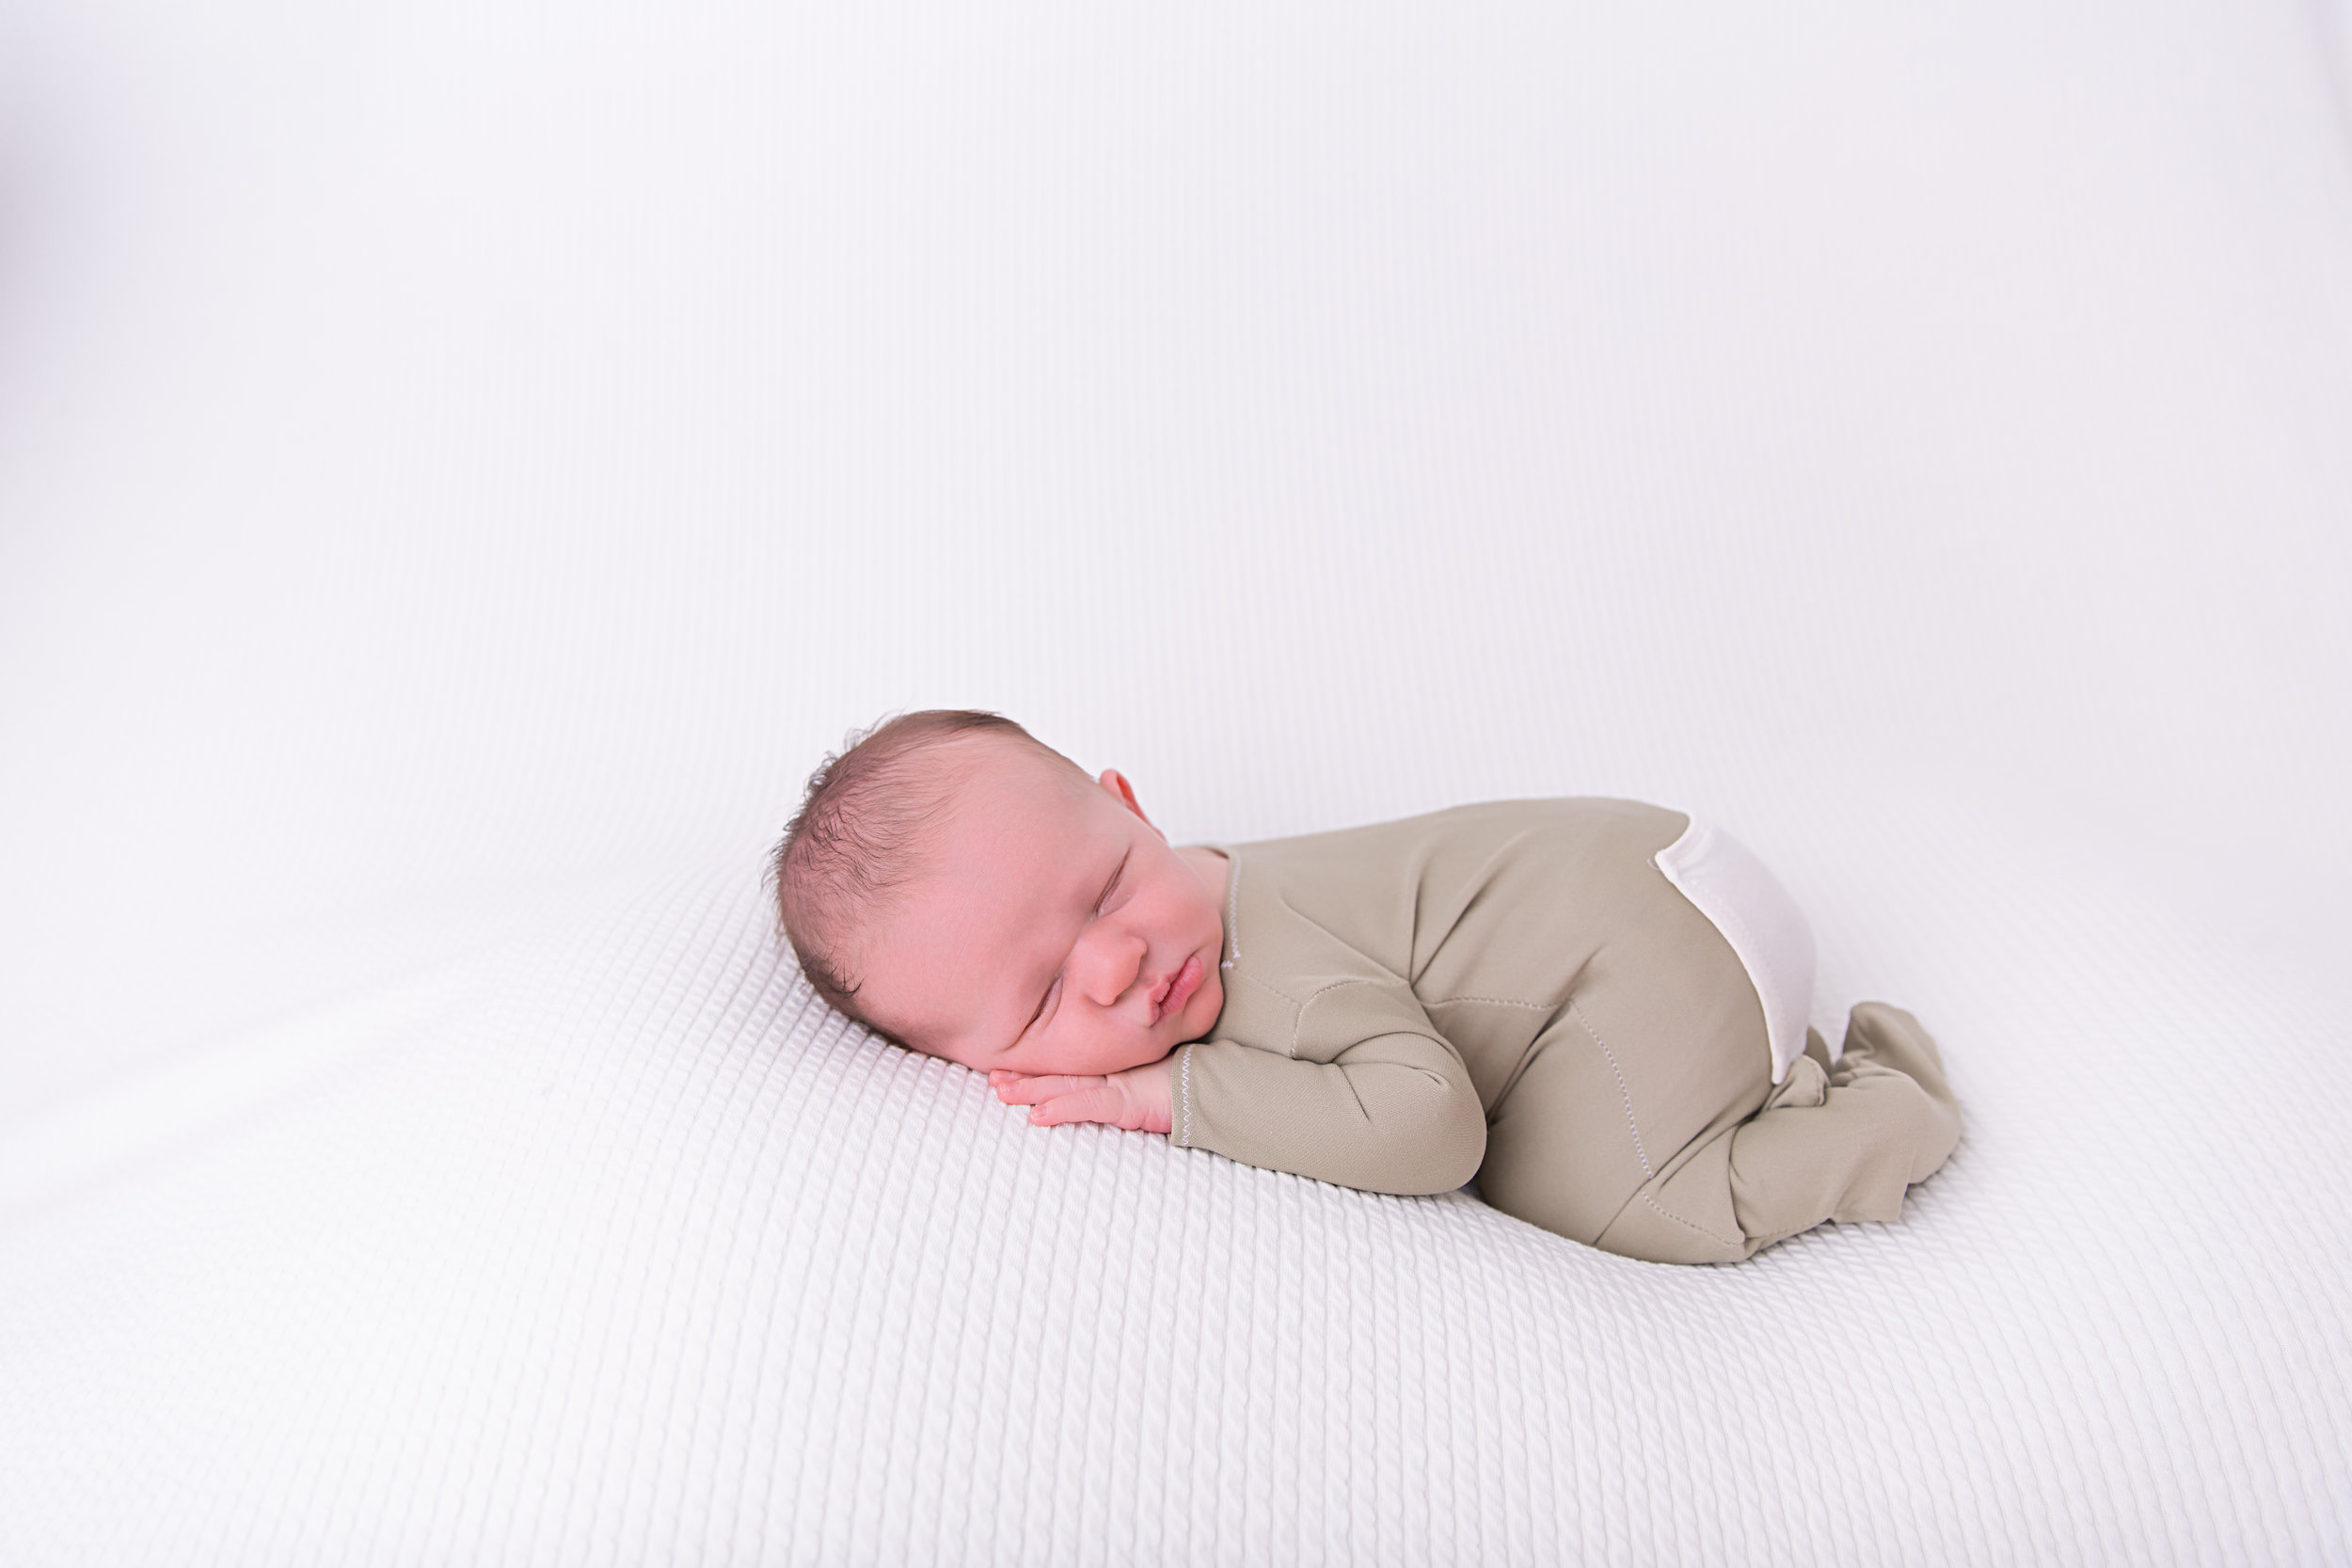 newborn baby boy in outfit curled up sleeping